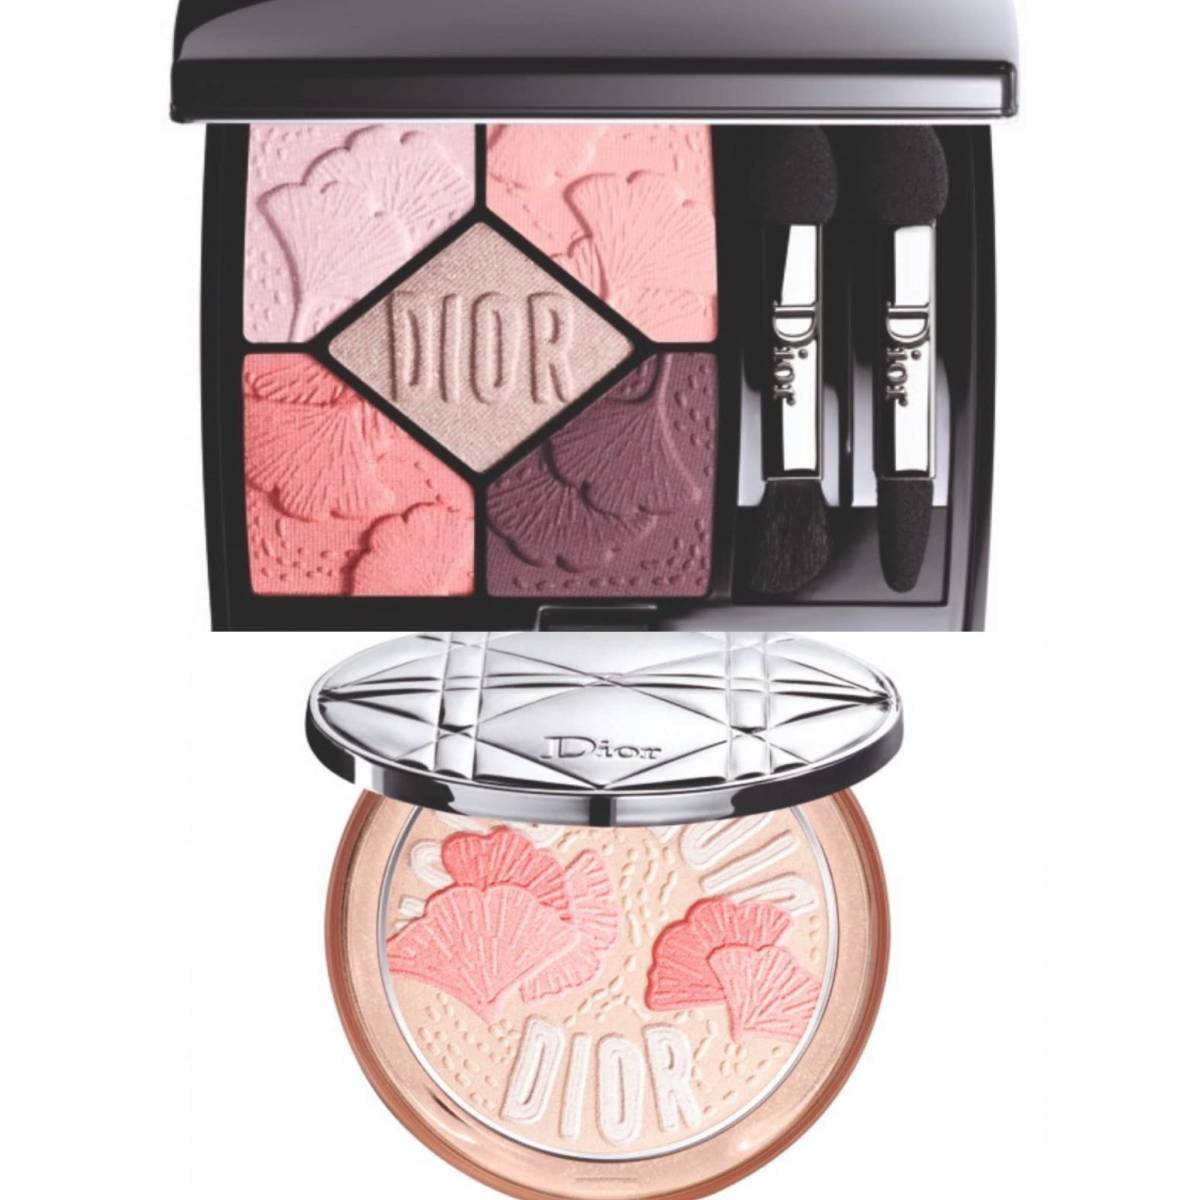 Limited products – Dior, Laduree, Celvoke